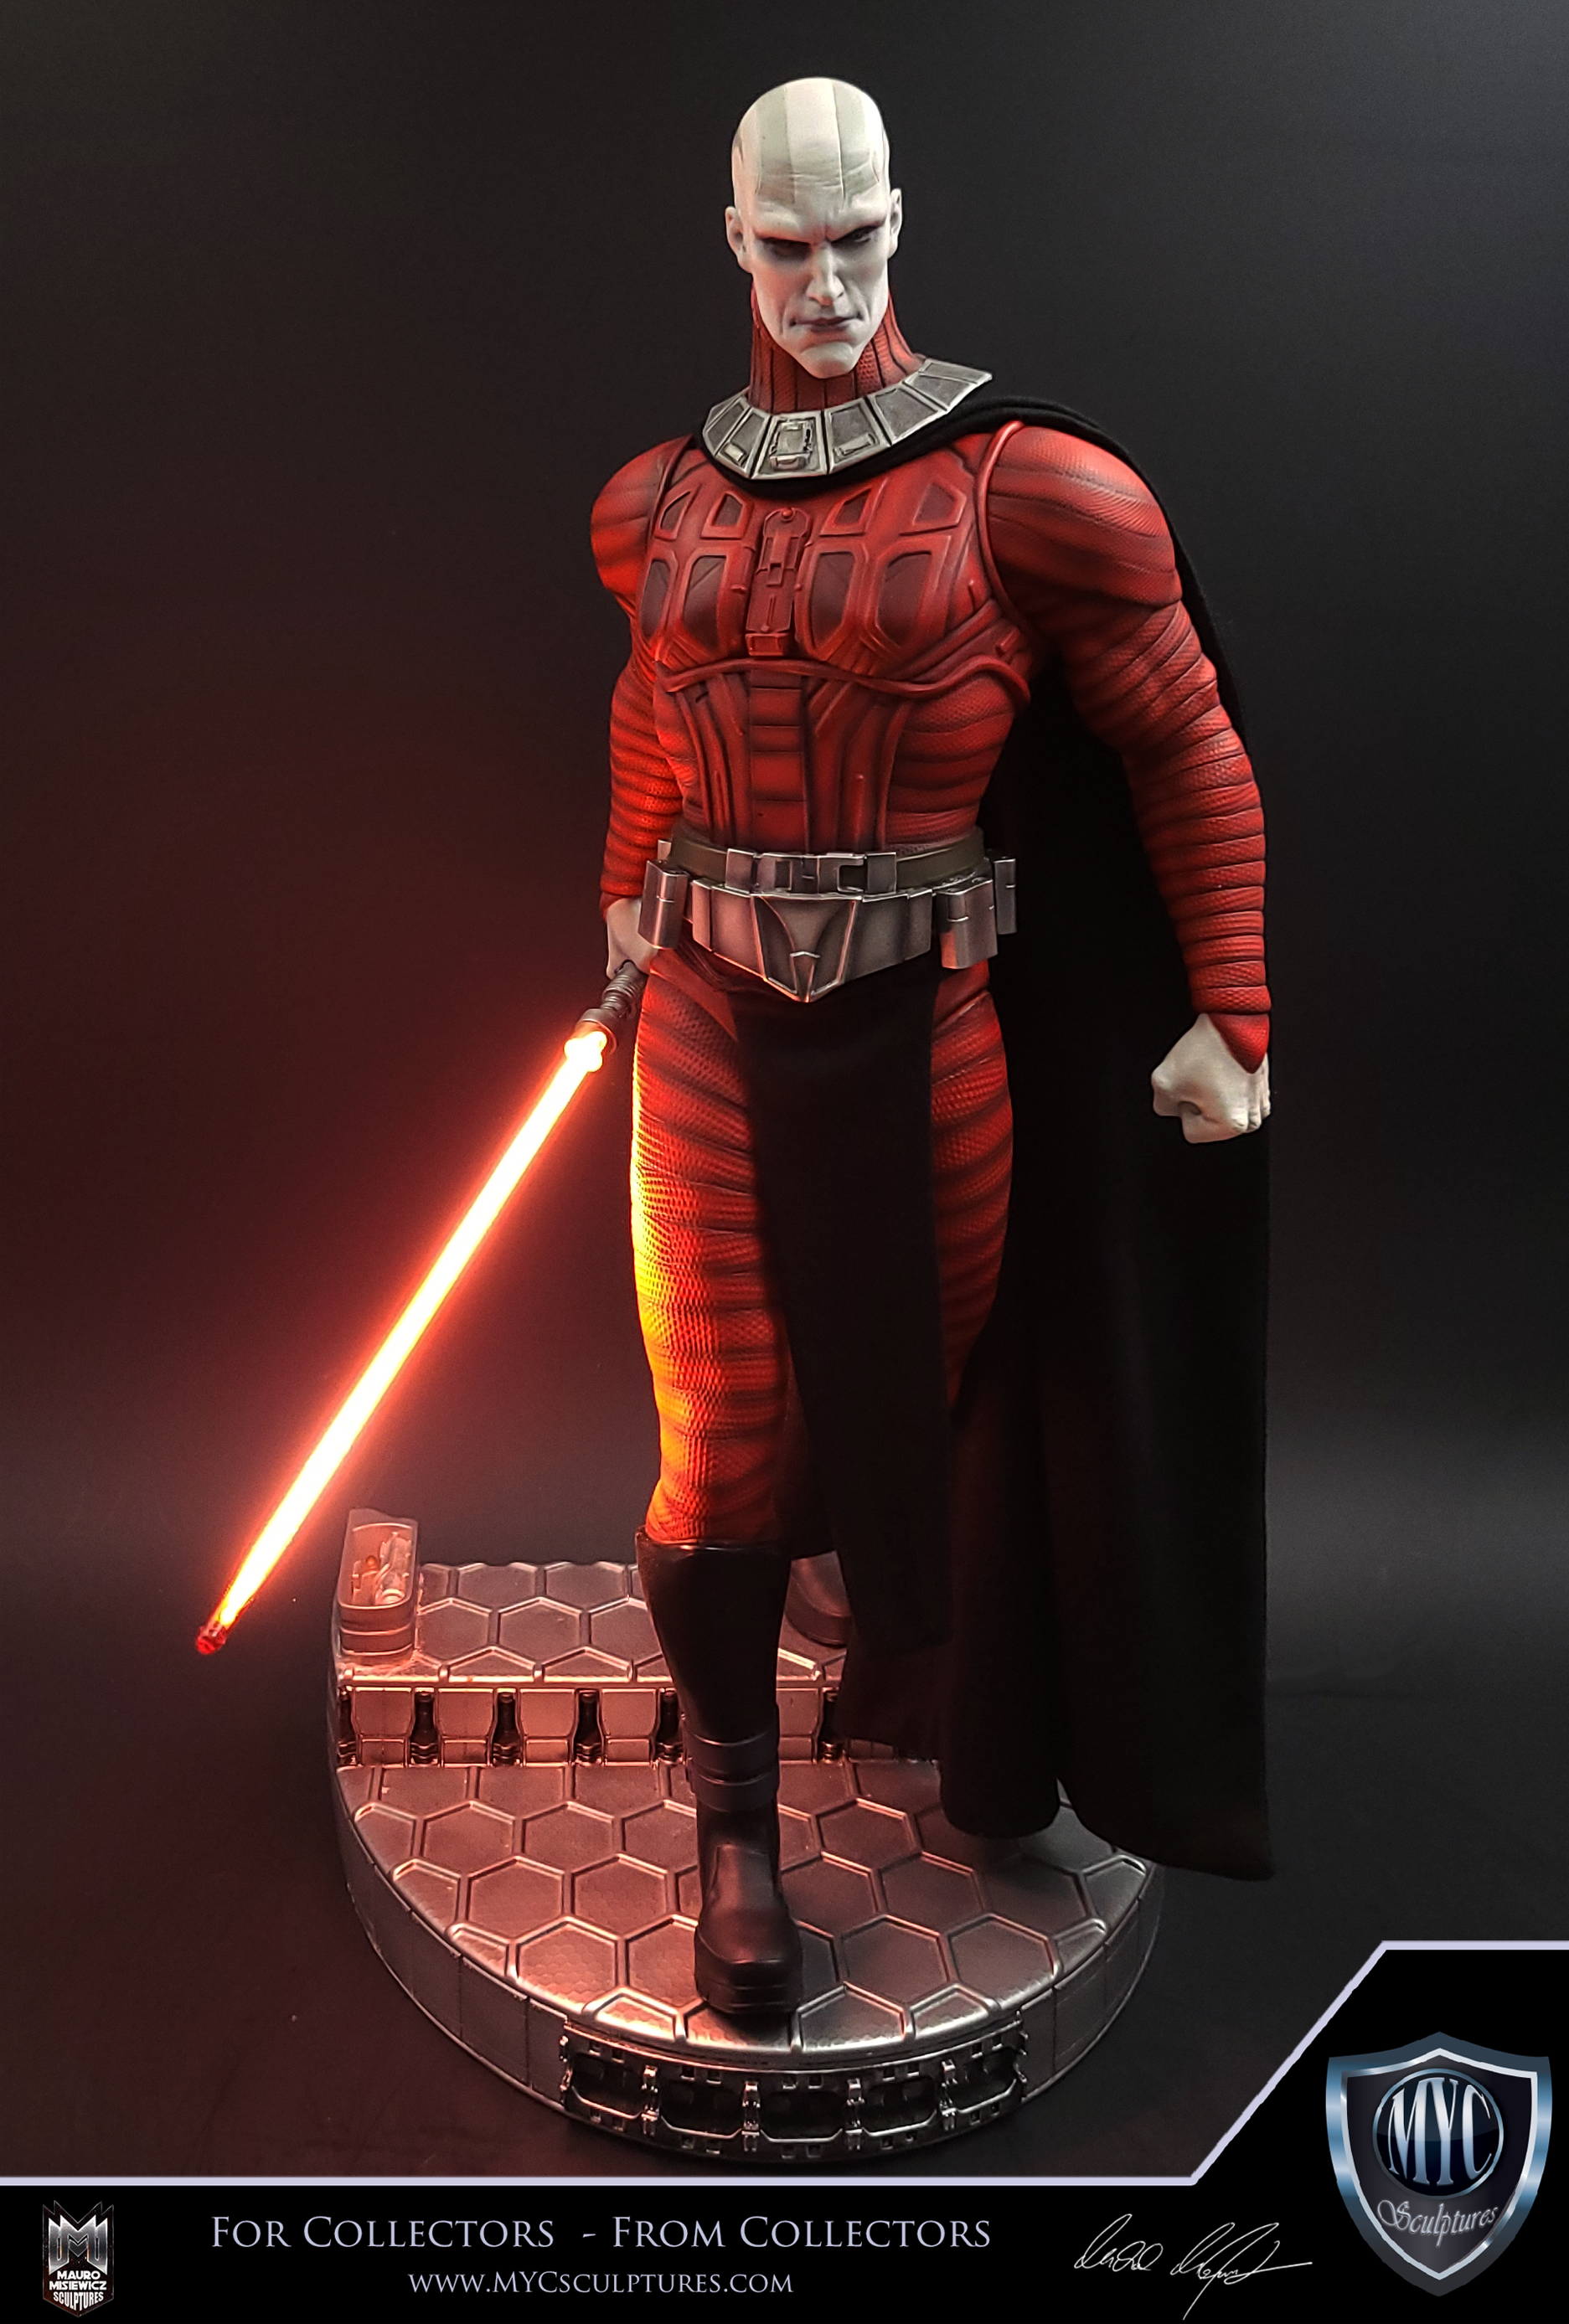 Darth_Malak_MYC_Sculptures_Statue_03